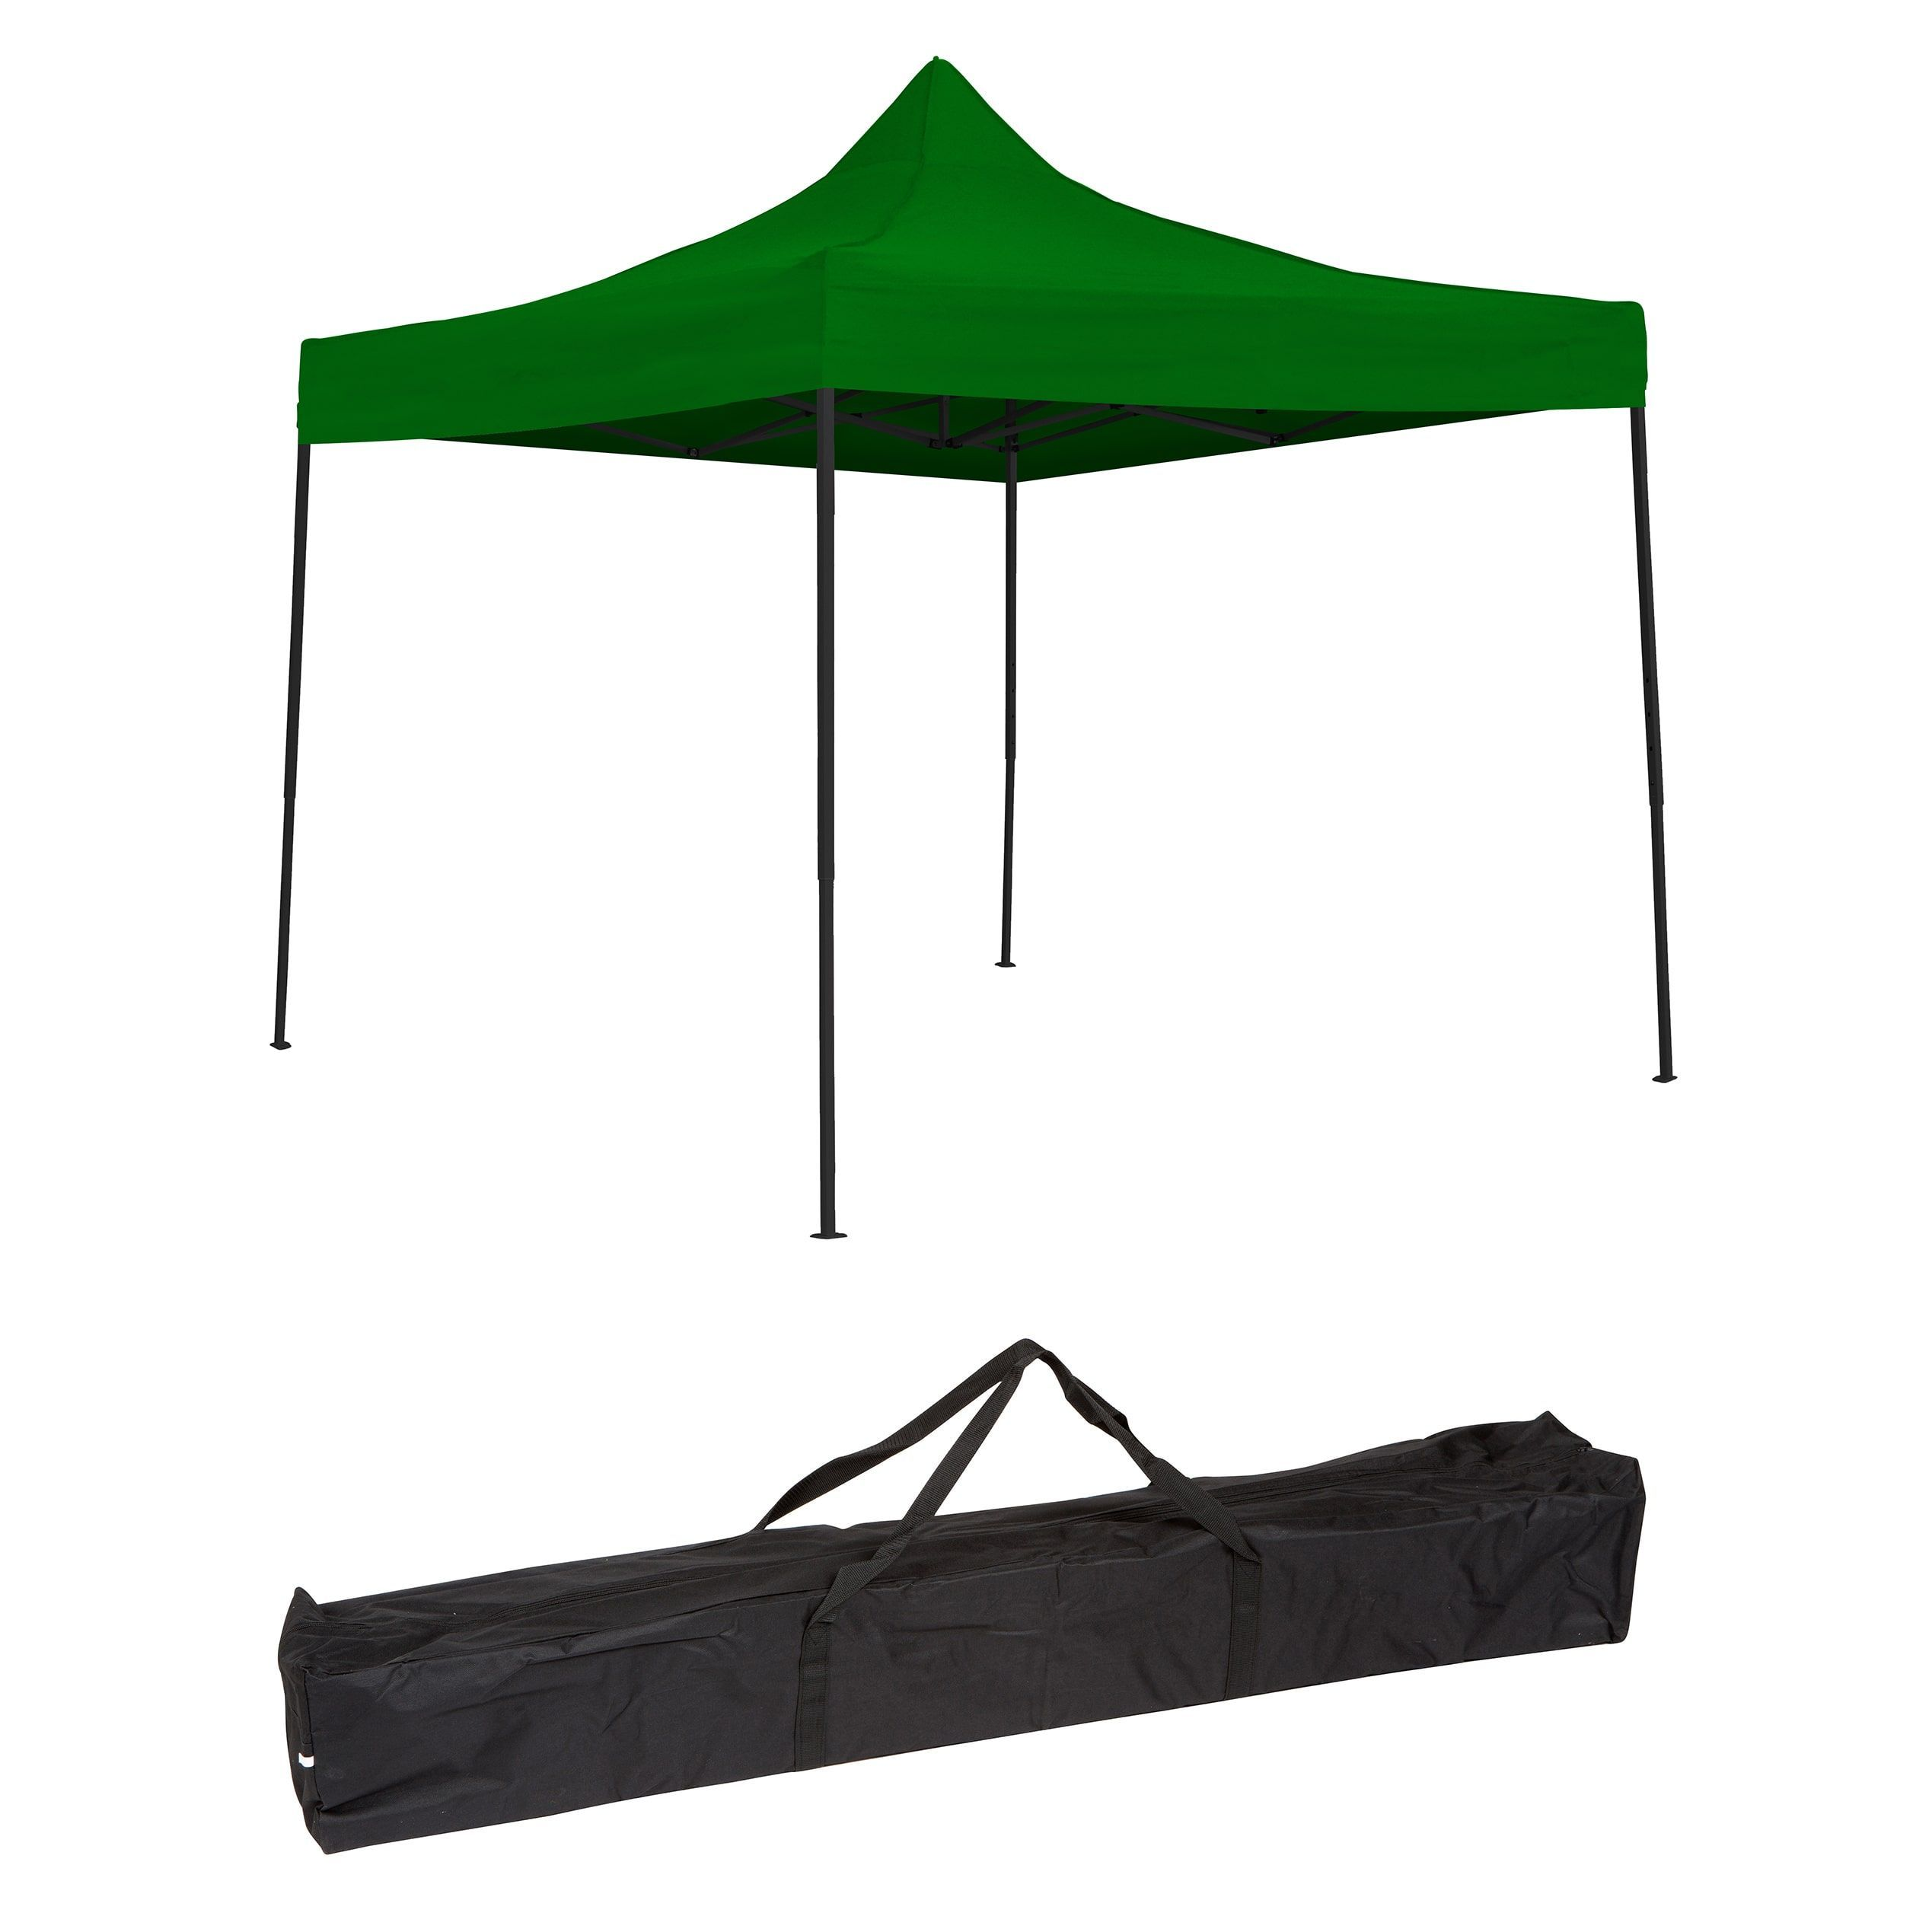 Trademark Innovations 10 Foot Lightweight And Portable Canopy Tent Set 10ftcan Grn Portable Canopy Canopy Tent Canopy Cover